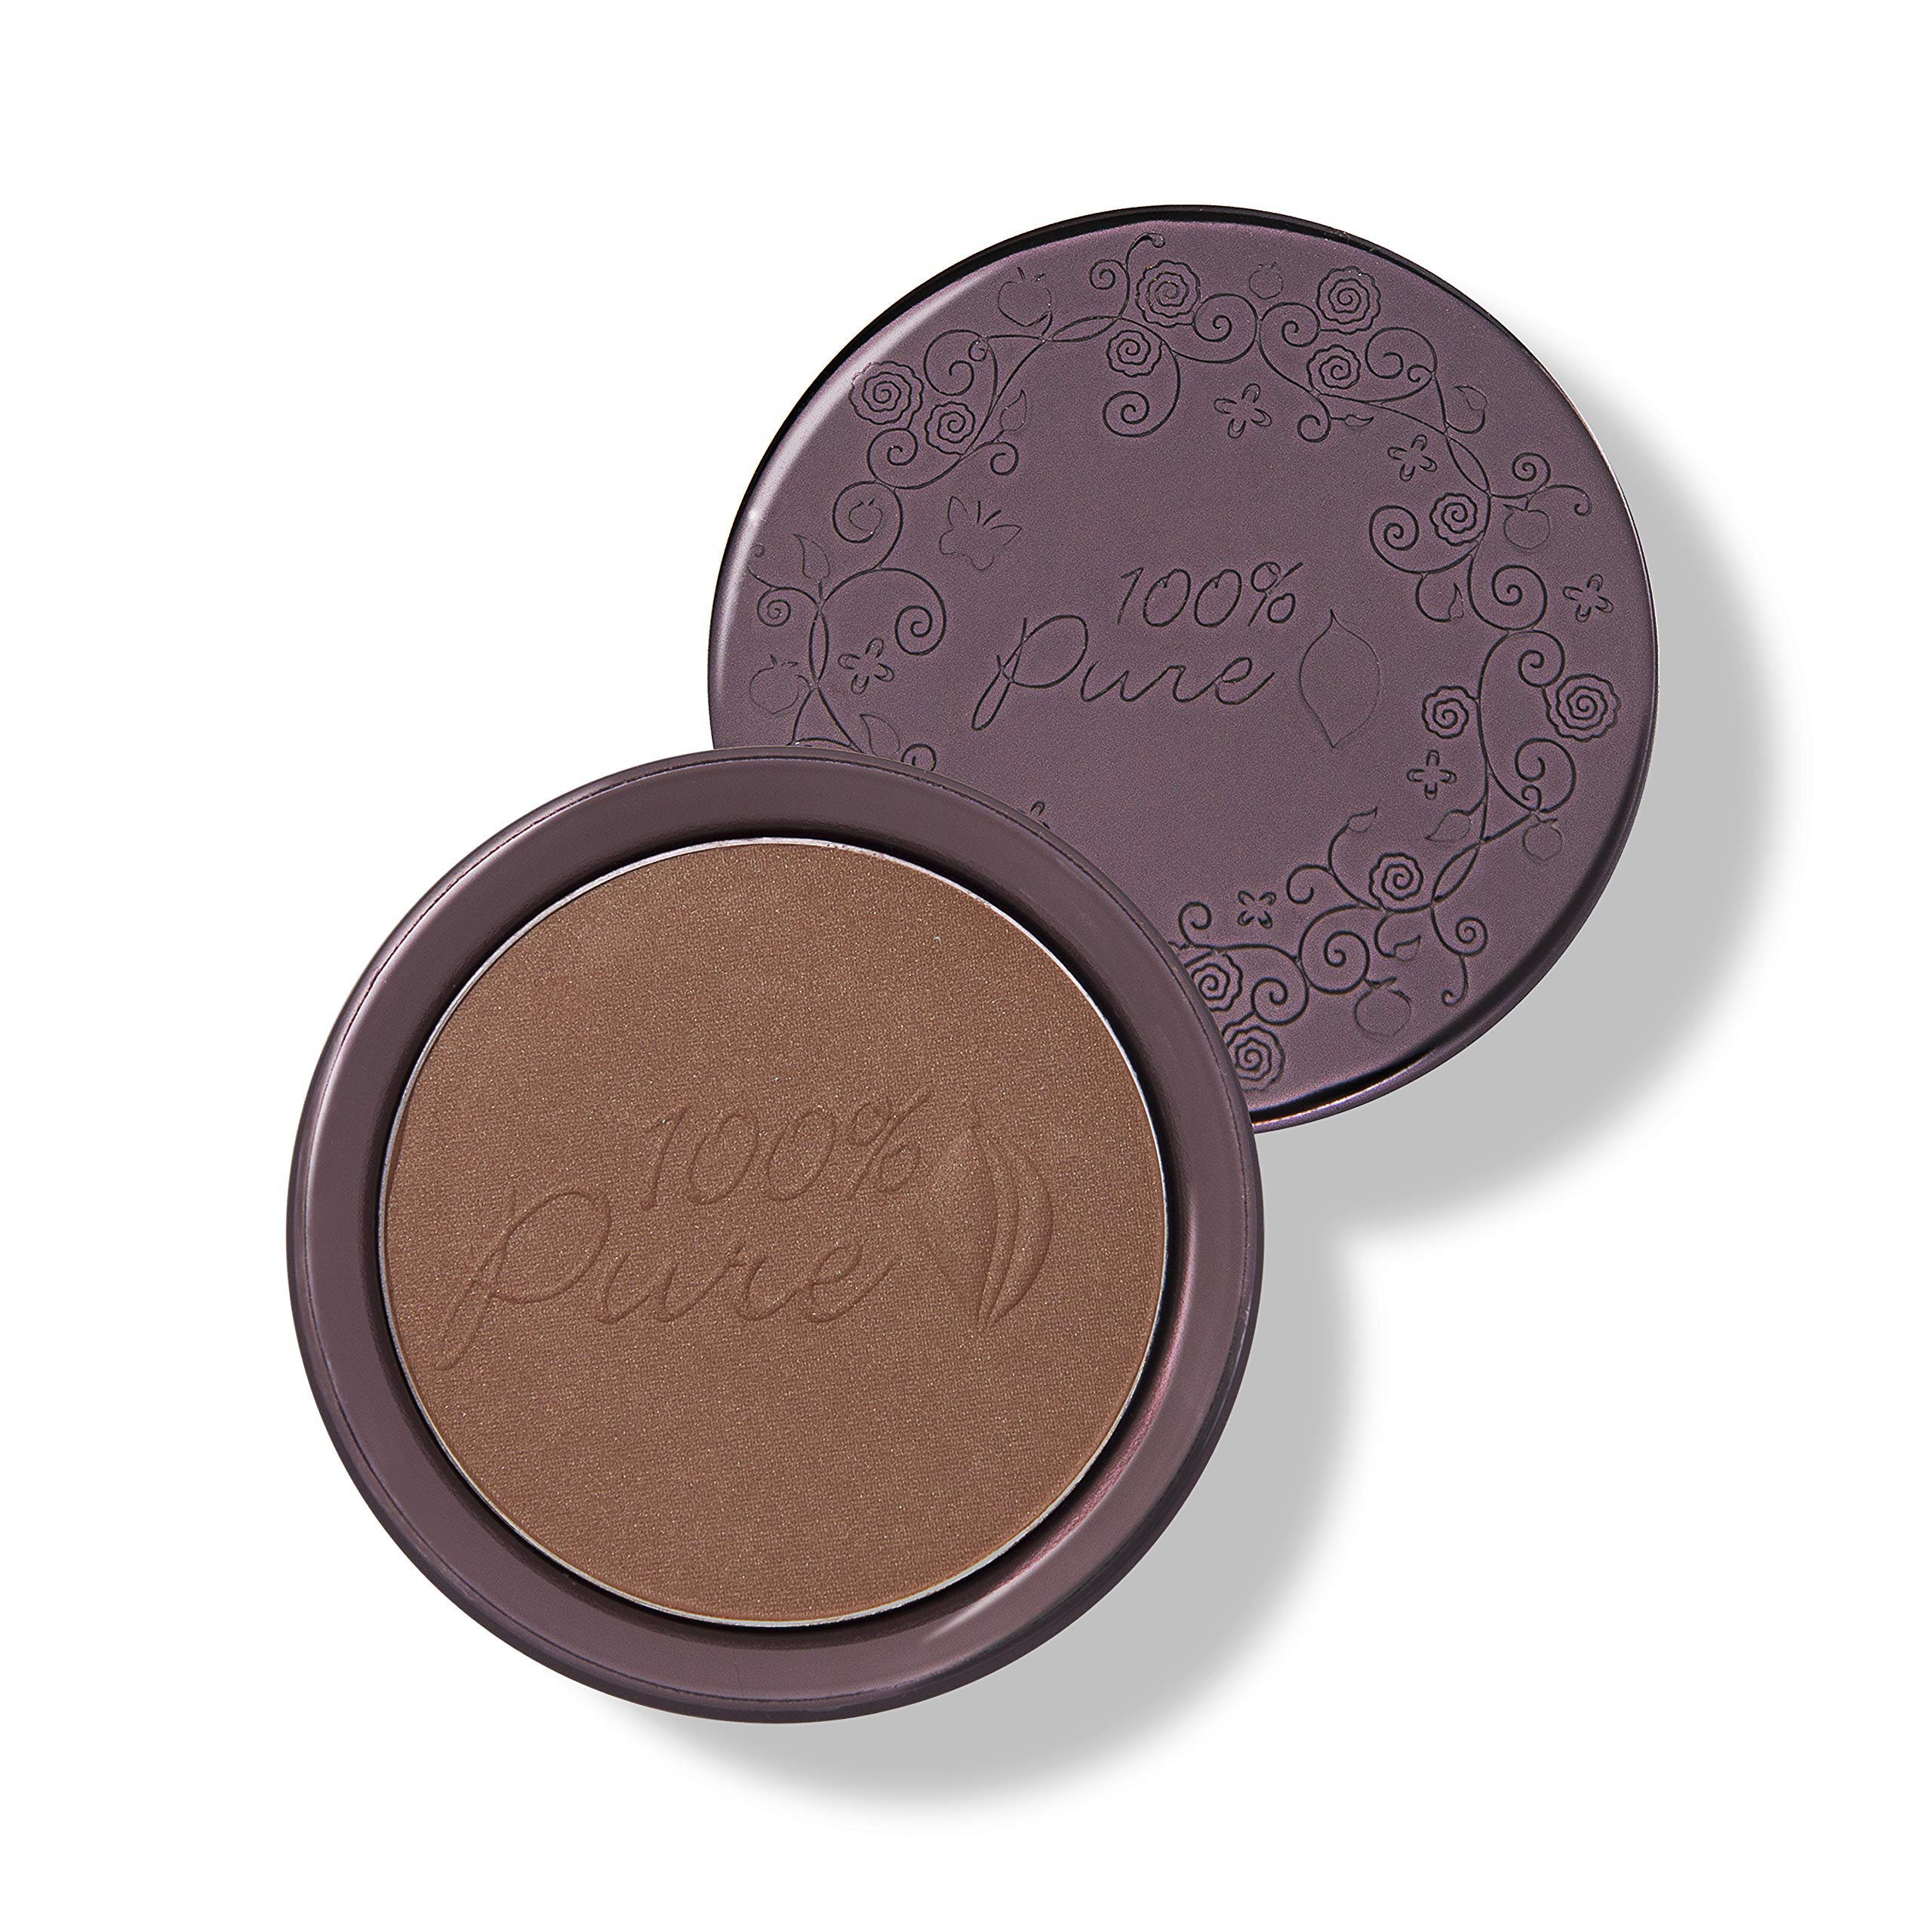 100% PURE Cocoa Pigmented Bronzer, Cocoa Glow, Bronzer Powder for Face, Contour Makeup, Soft Shimmer, Sun Kissed Glow (Deep Brown w/Gold-Red Undertones) - 0.32 Oz